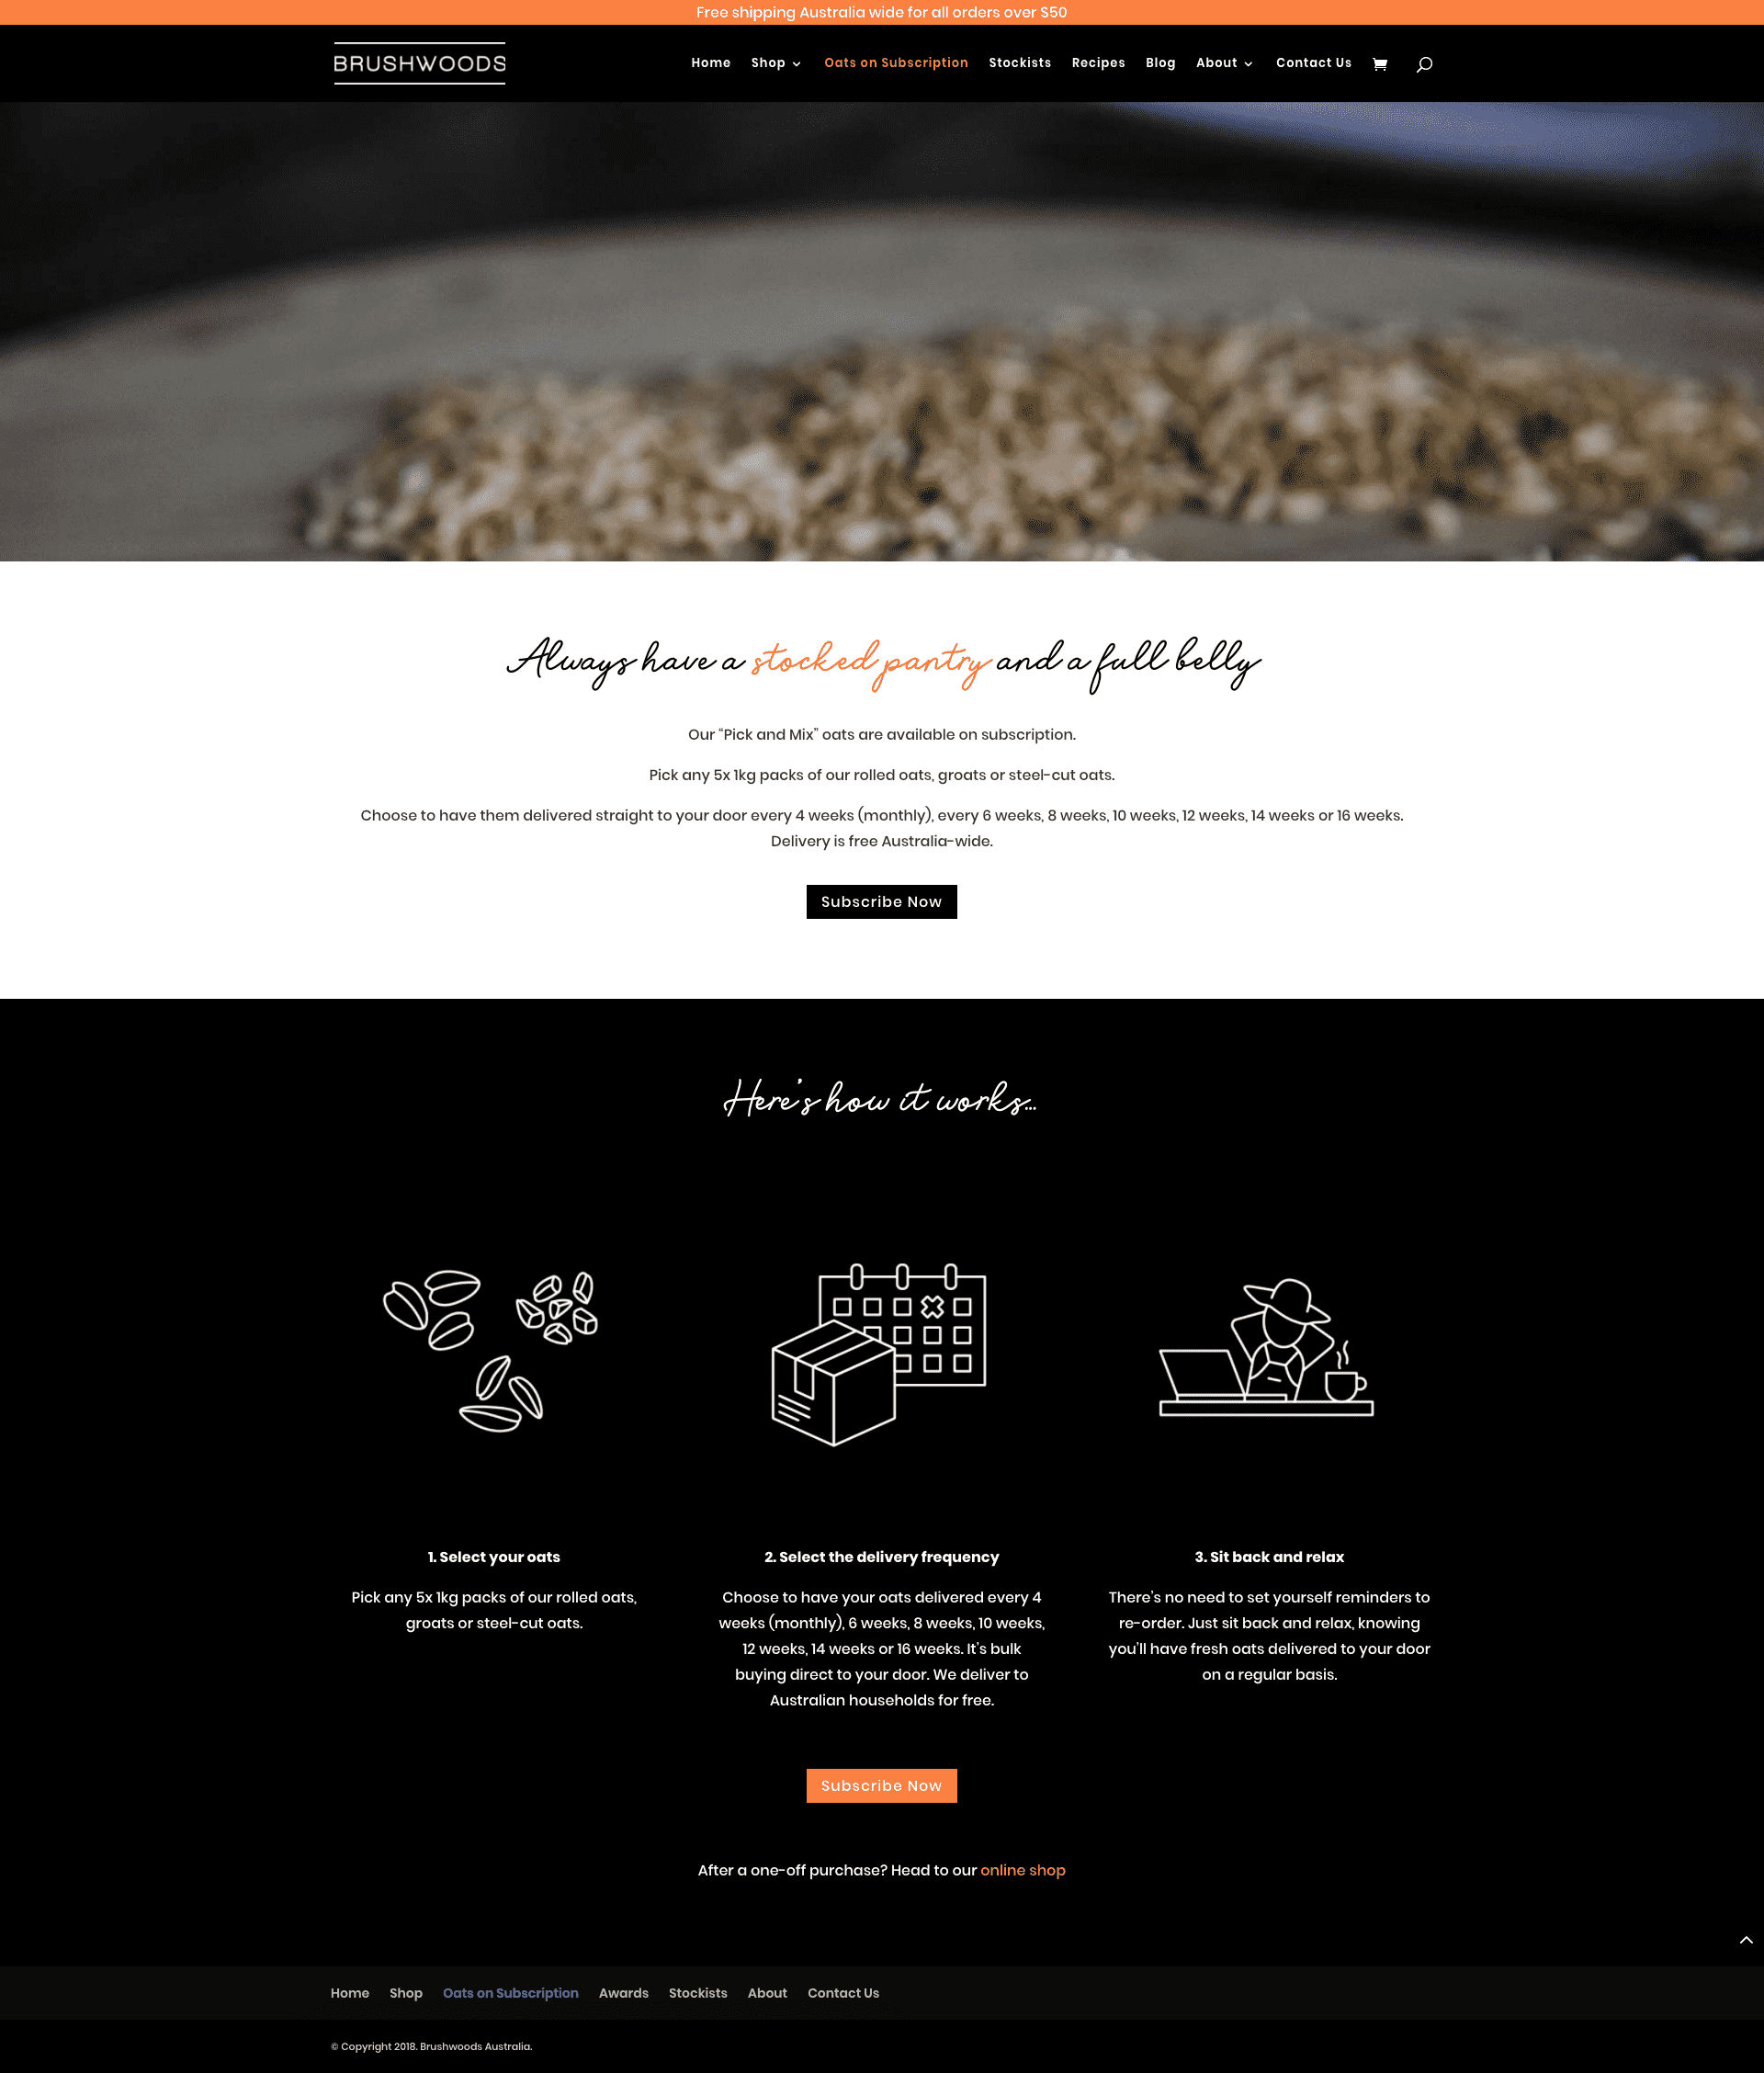 """Image of Brushwoods Australia """"Oats on Subscription"""" web page which provides details about how the subscription service works."""